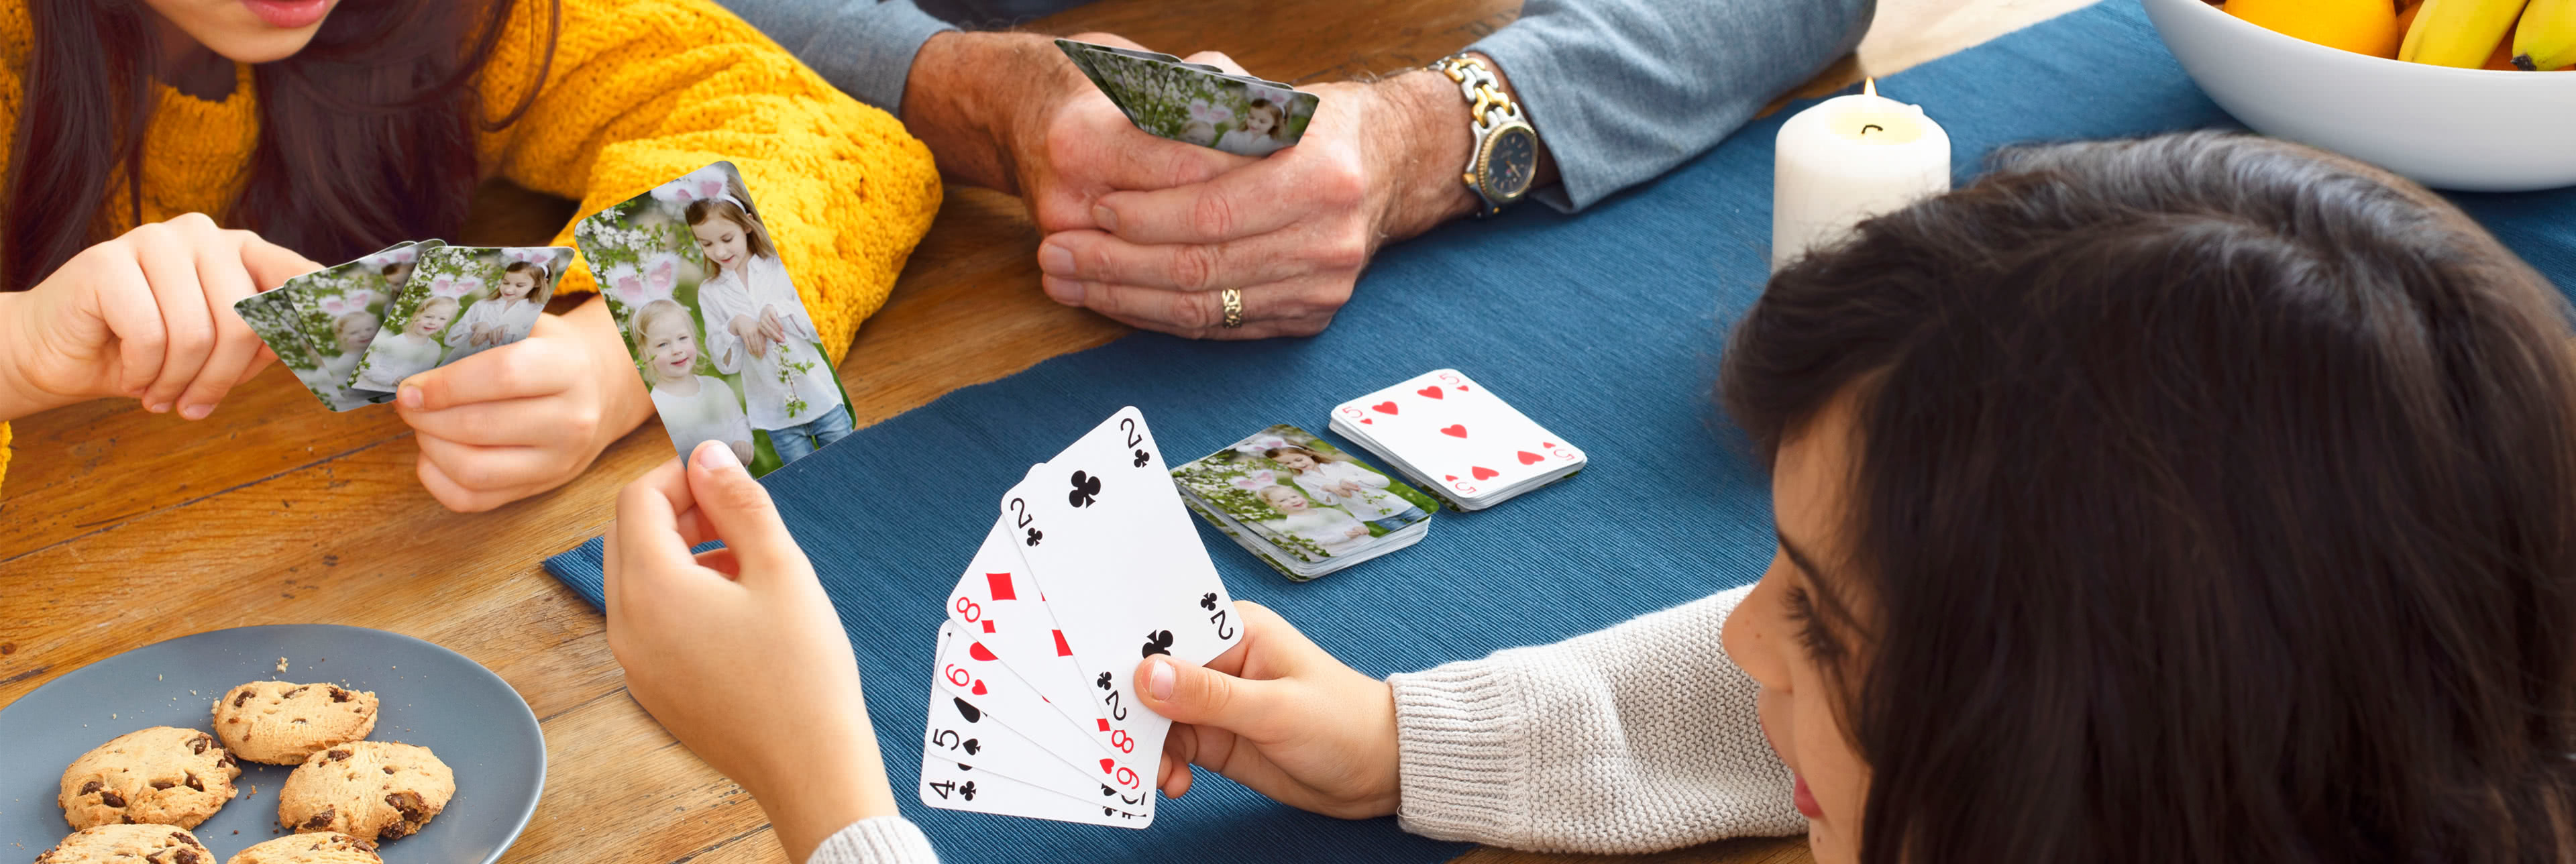 7a15a003ae16002b06335bc6532cc8002ef5cac9_Personalised-Playing-Cards-lifestyle-3_1-3840-@2x